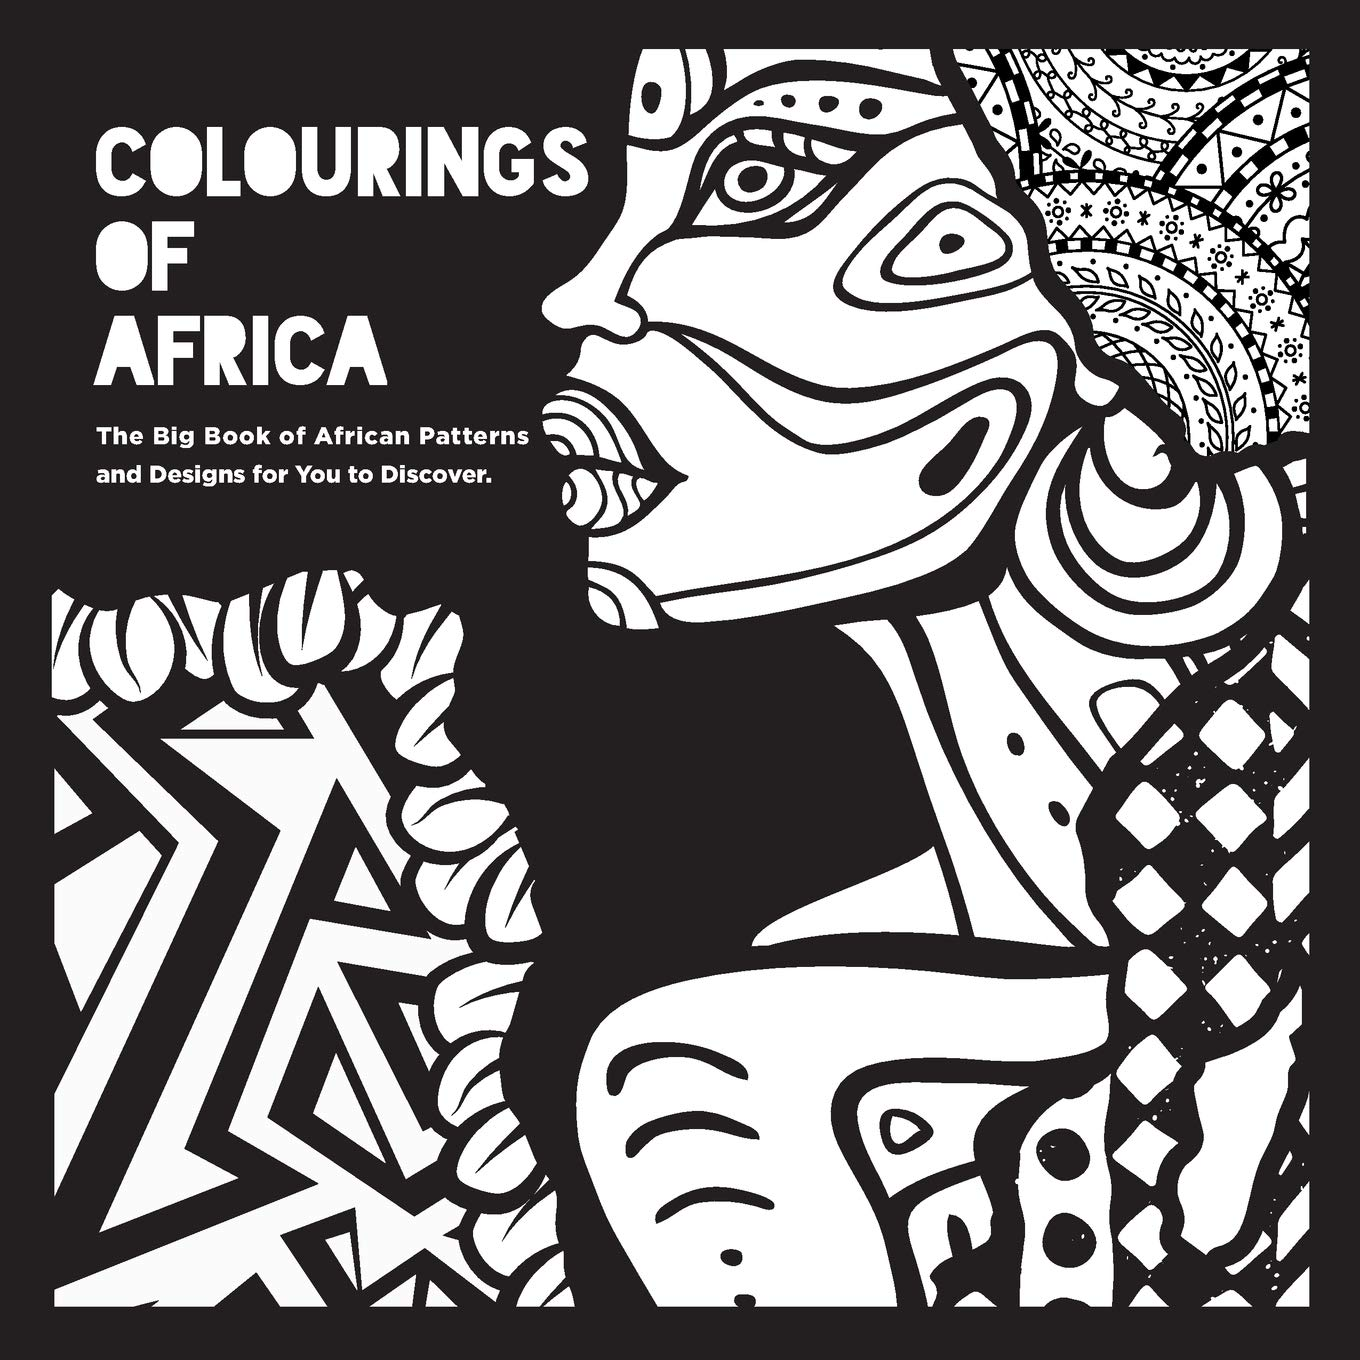 Amazon Com Colourings Of Africa The Big Book Of African Patterns And Designs For You To Discover 9789982705967 Facility Of E Brig Library Books